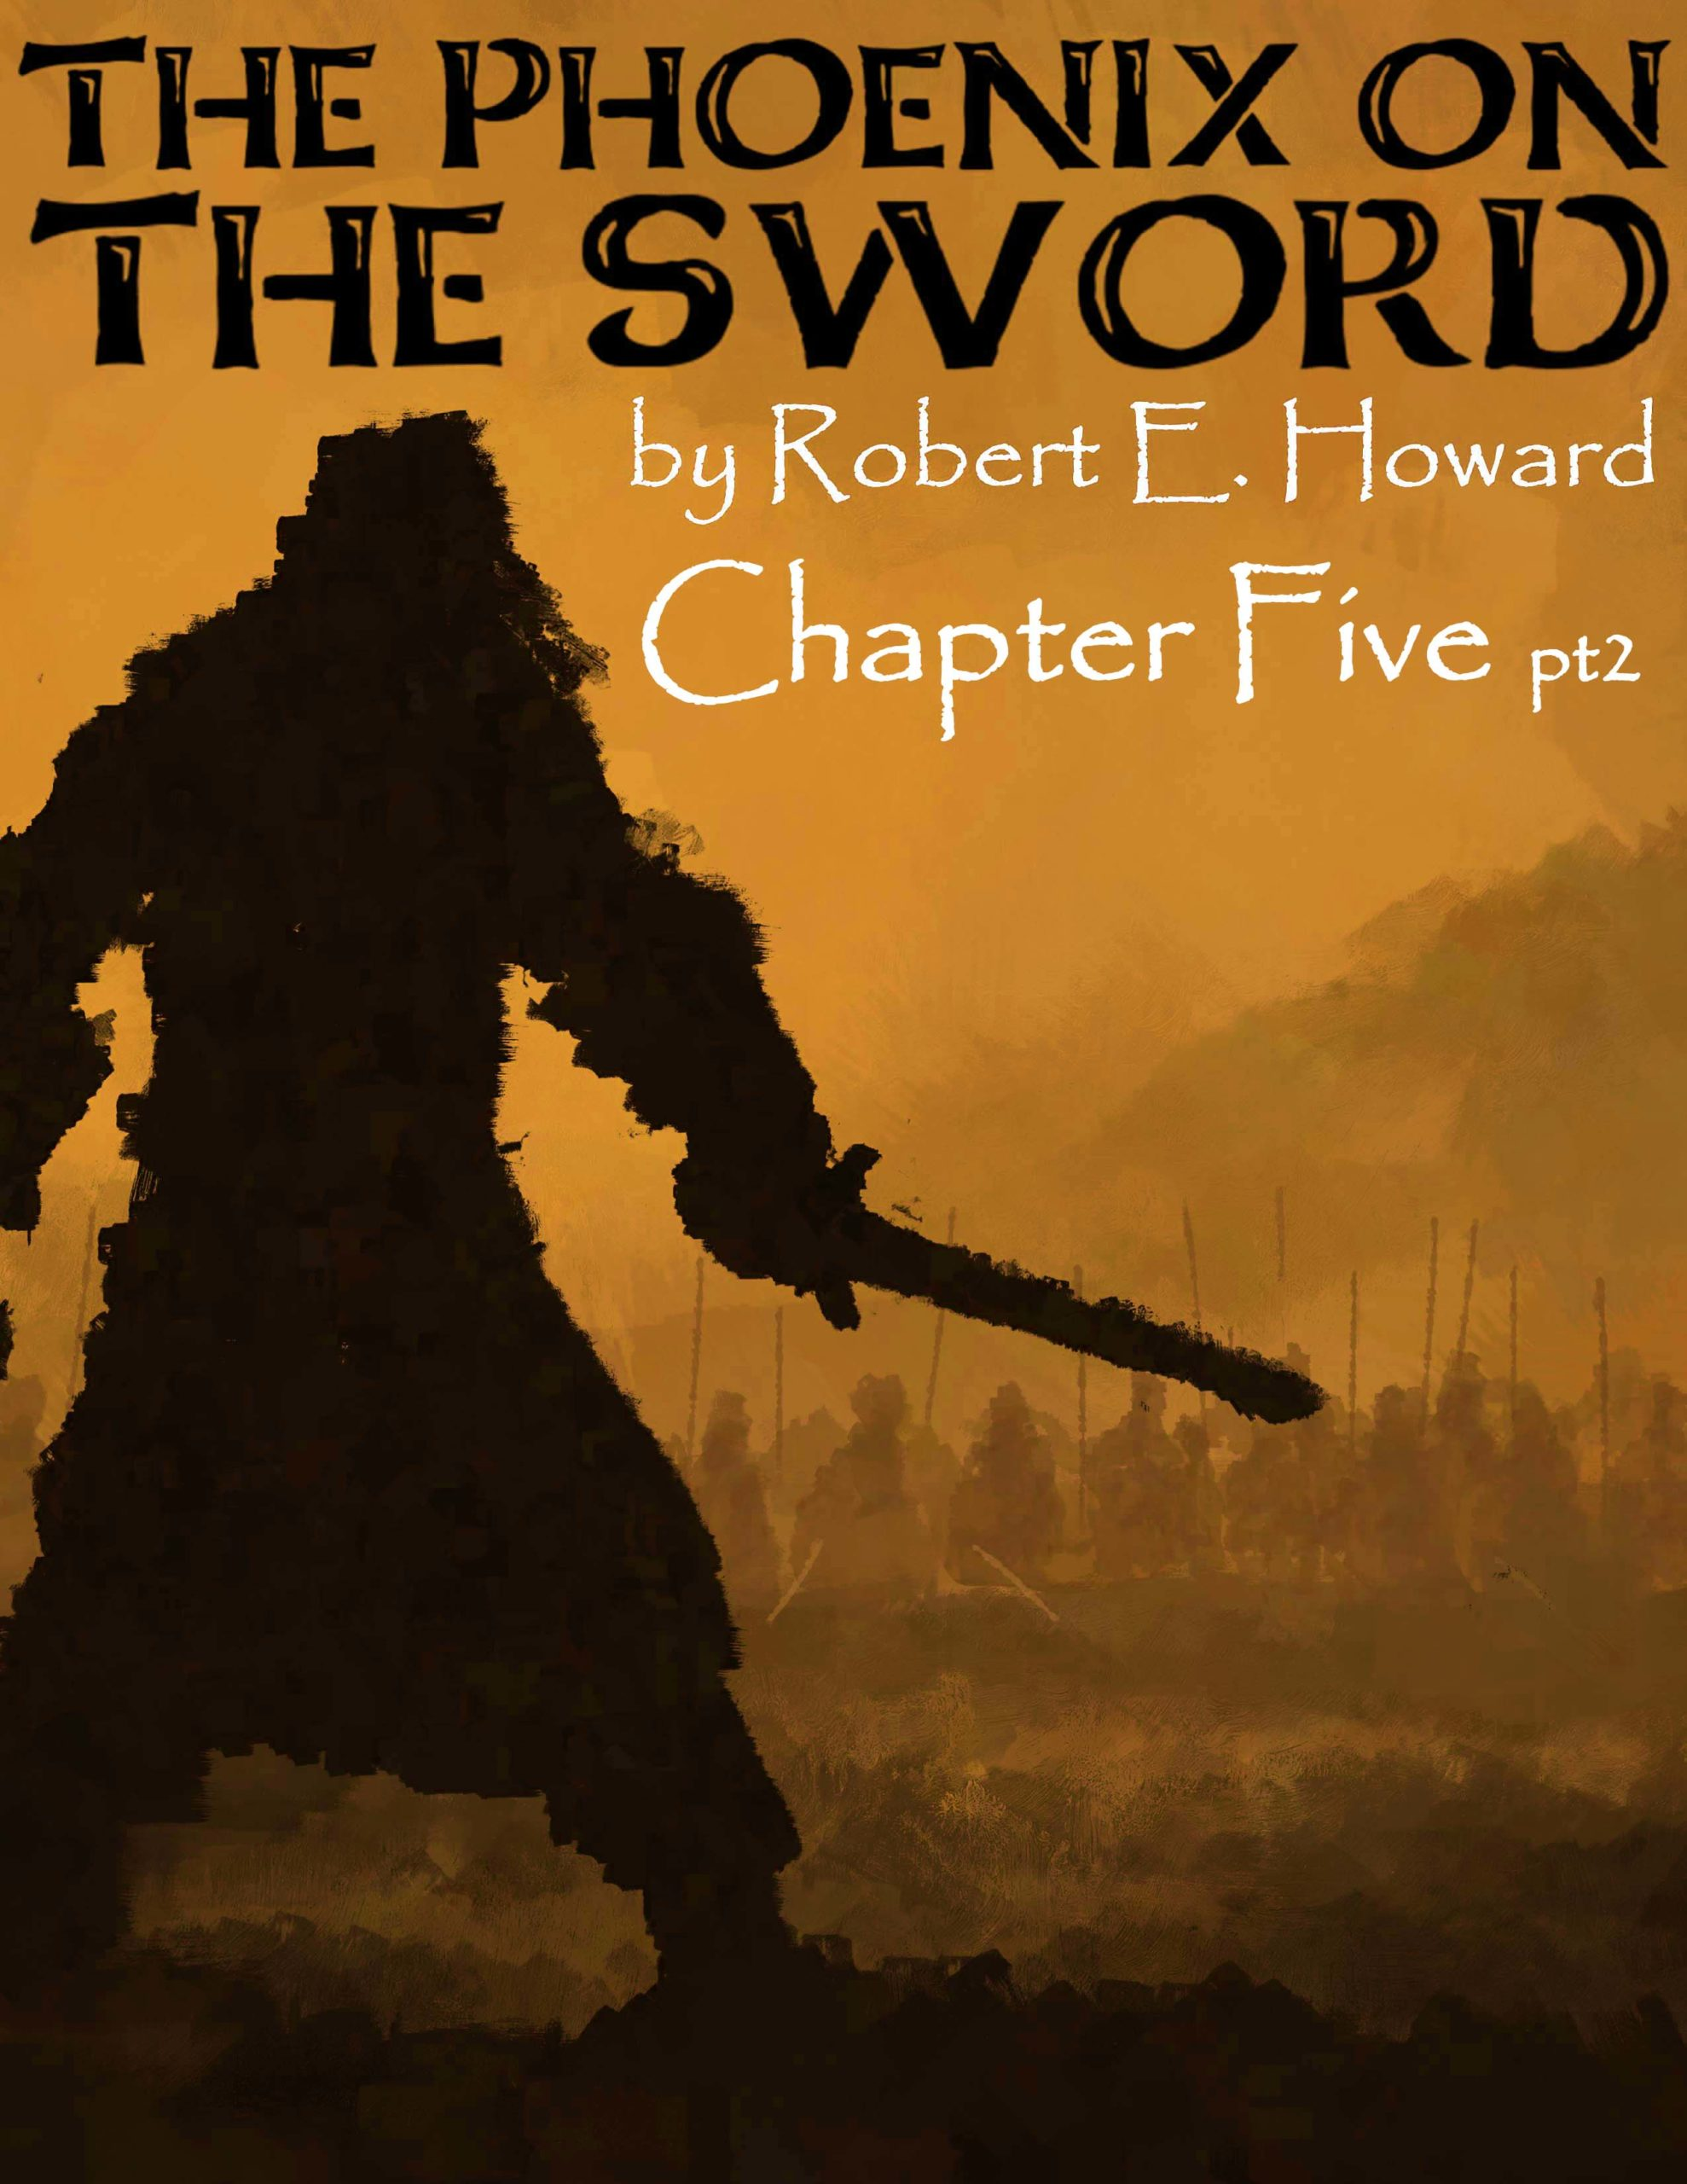 The Phoenix on the Sword Chapter 5 pt 2